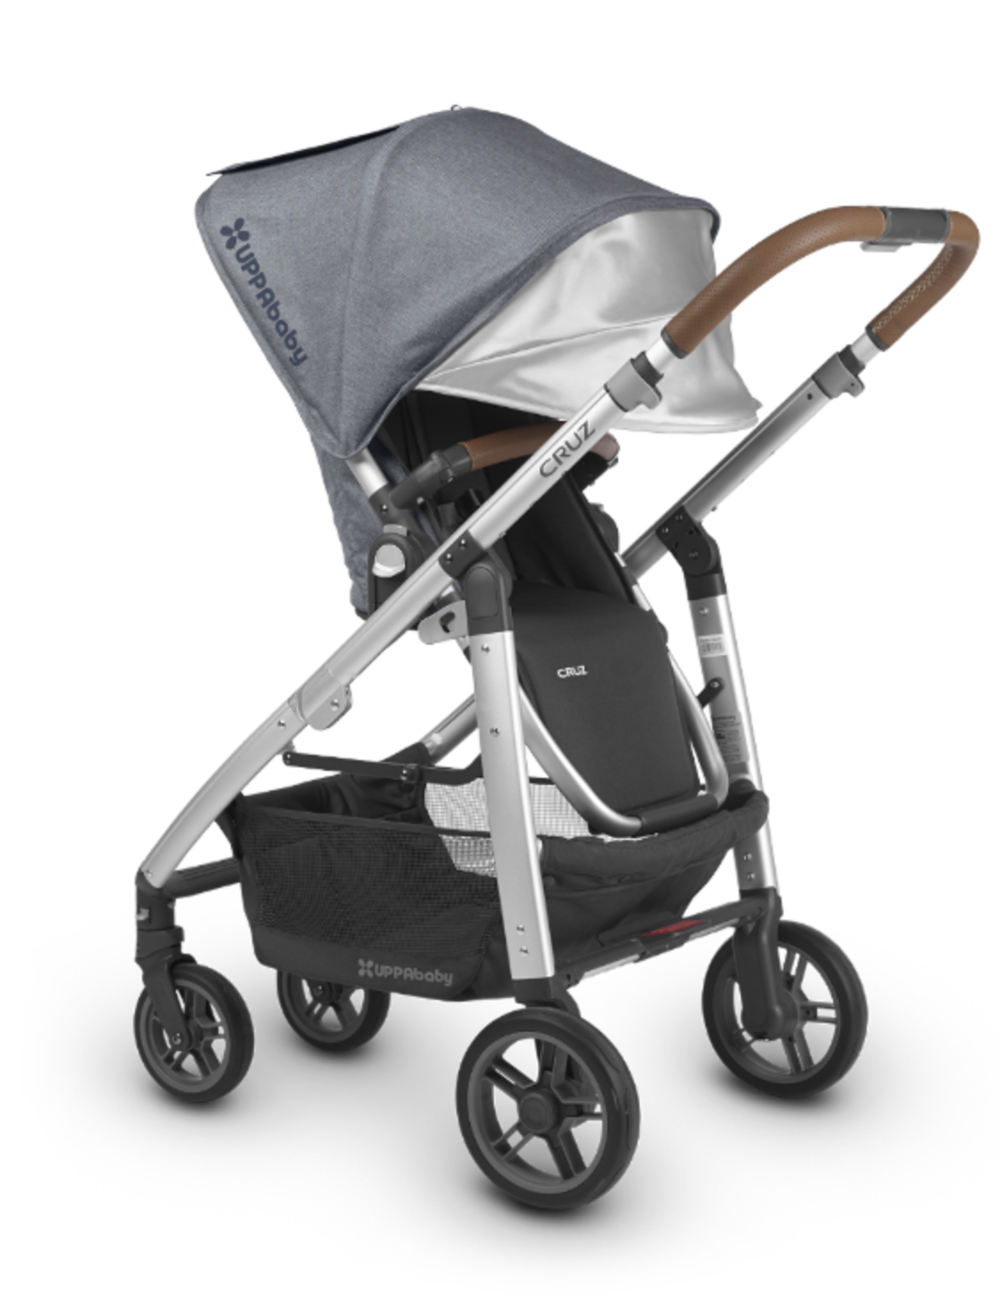 Cruz 'Henry' with Black Leather Bumper bar and Handle Bar accessories for existing strollers